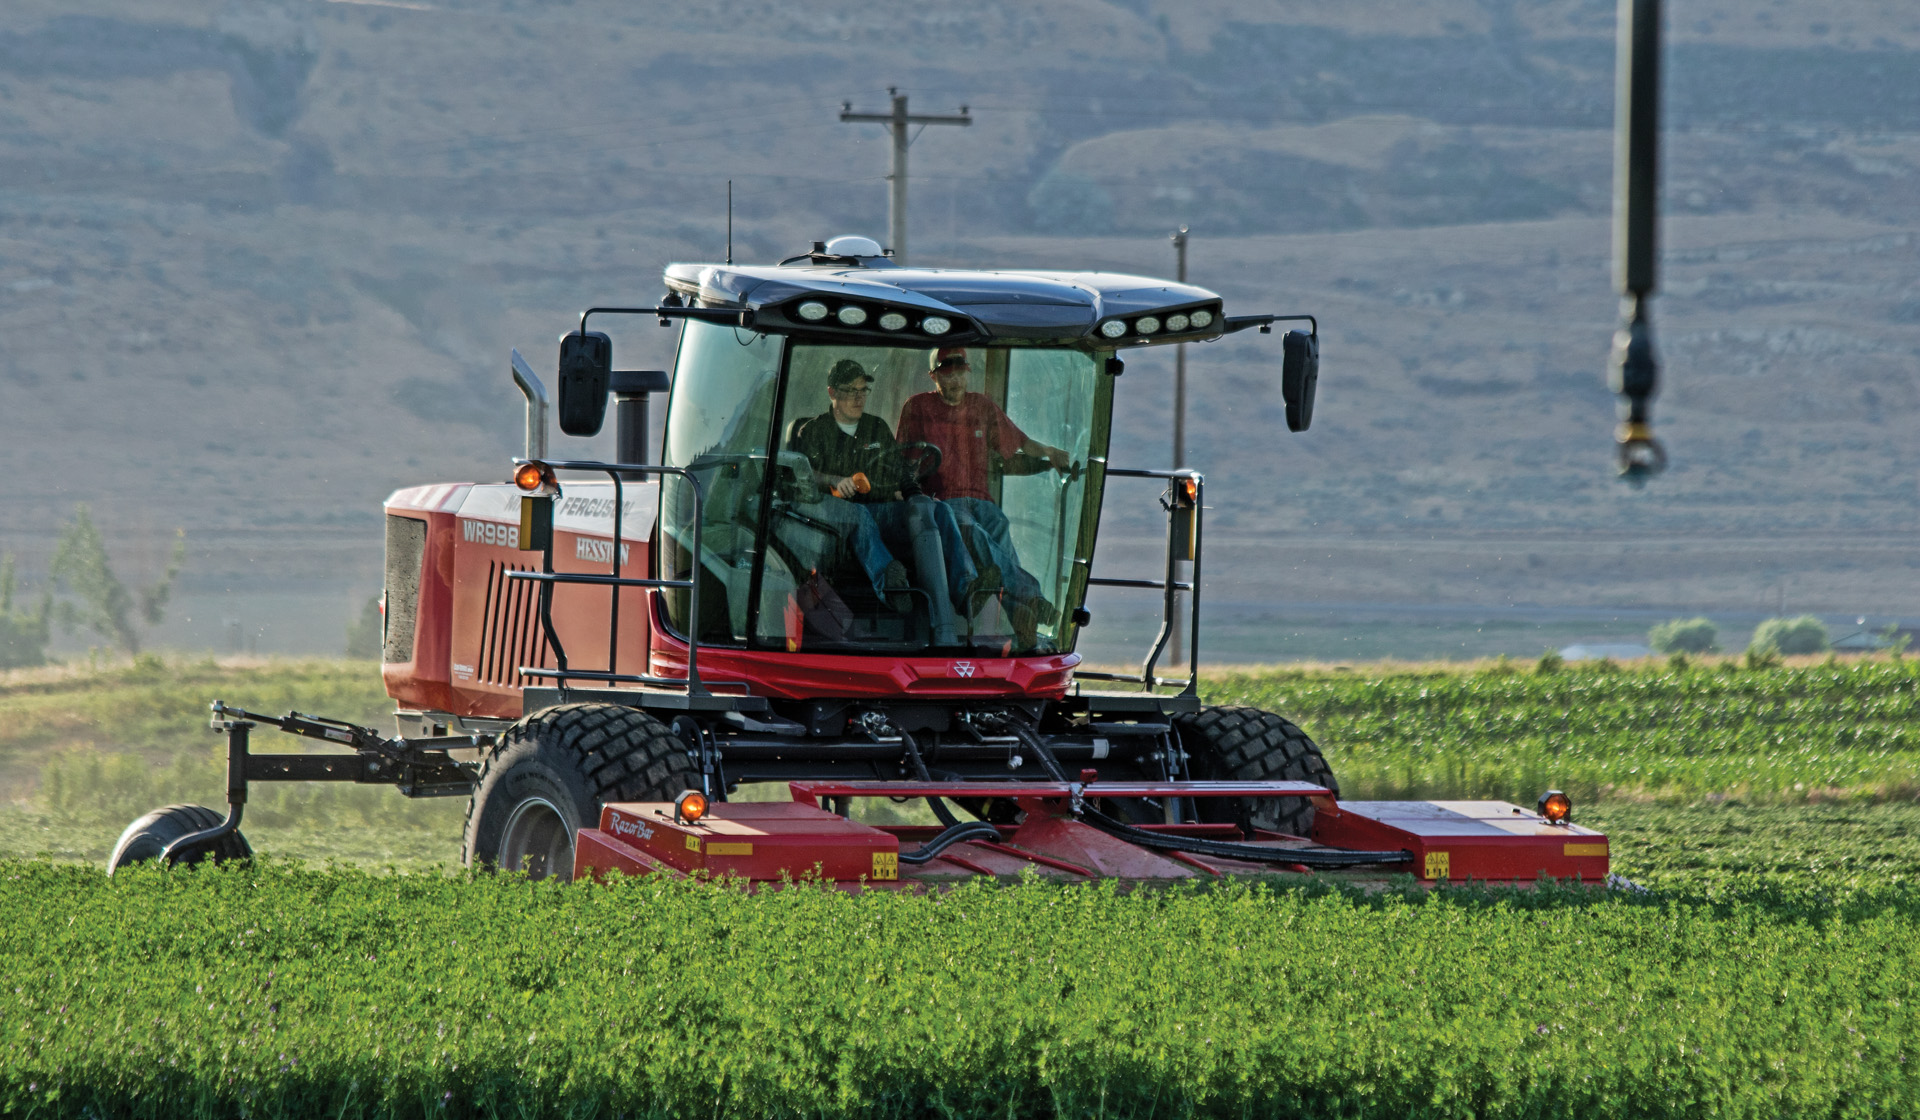 Hesston WR9900 Windrower - Power and Versatility